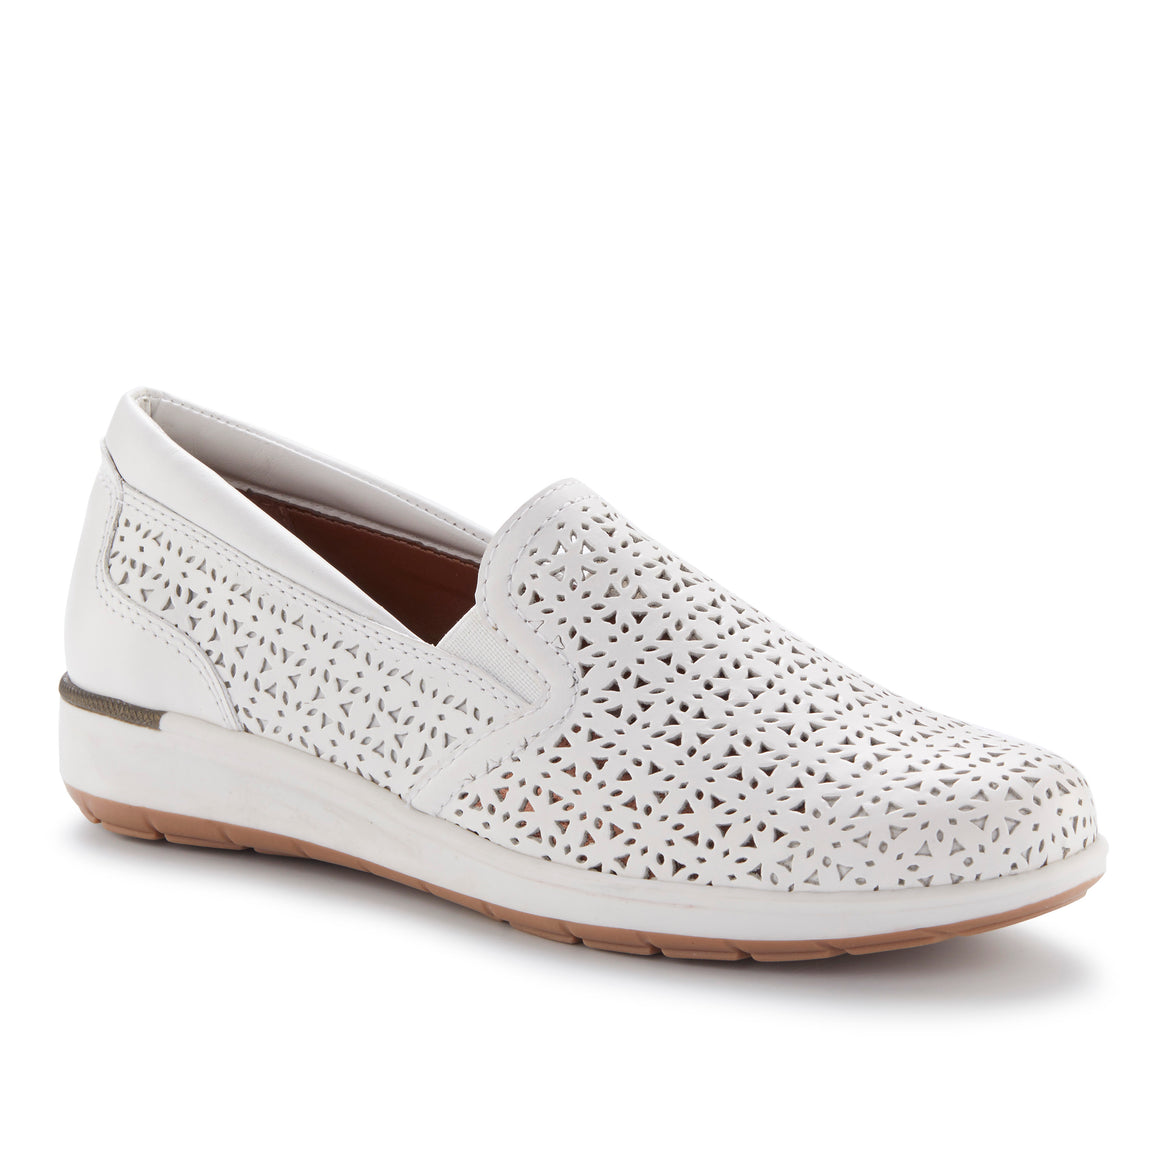 Orleans: White Perfed Nubuck